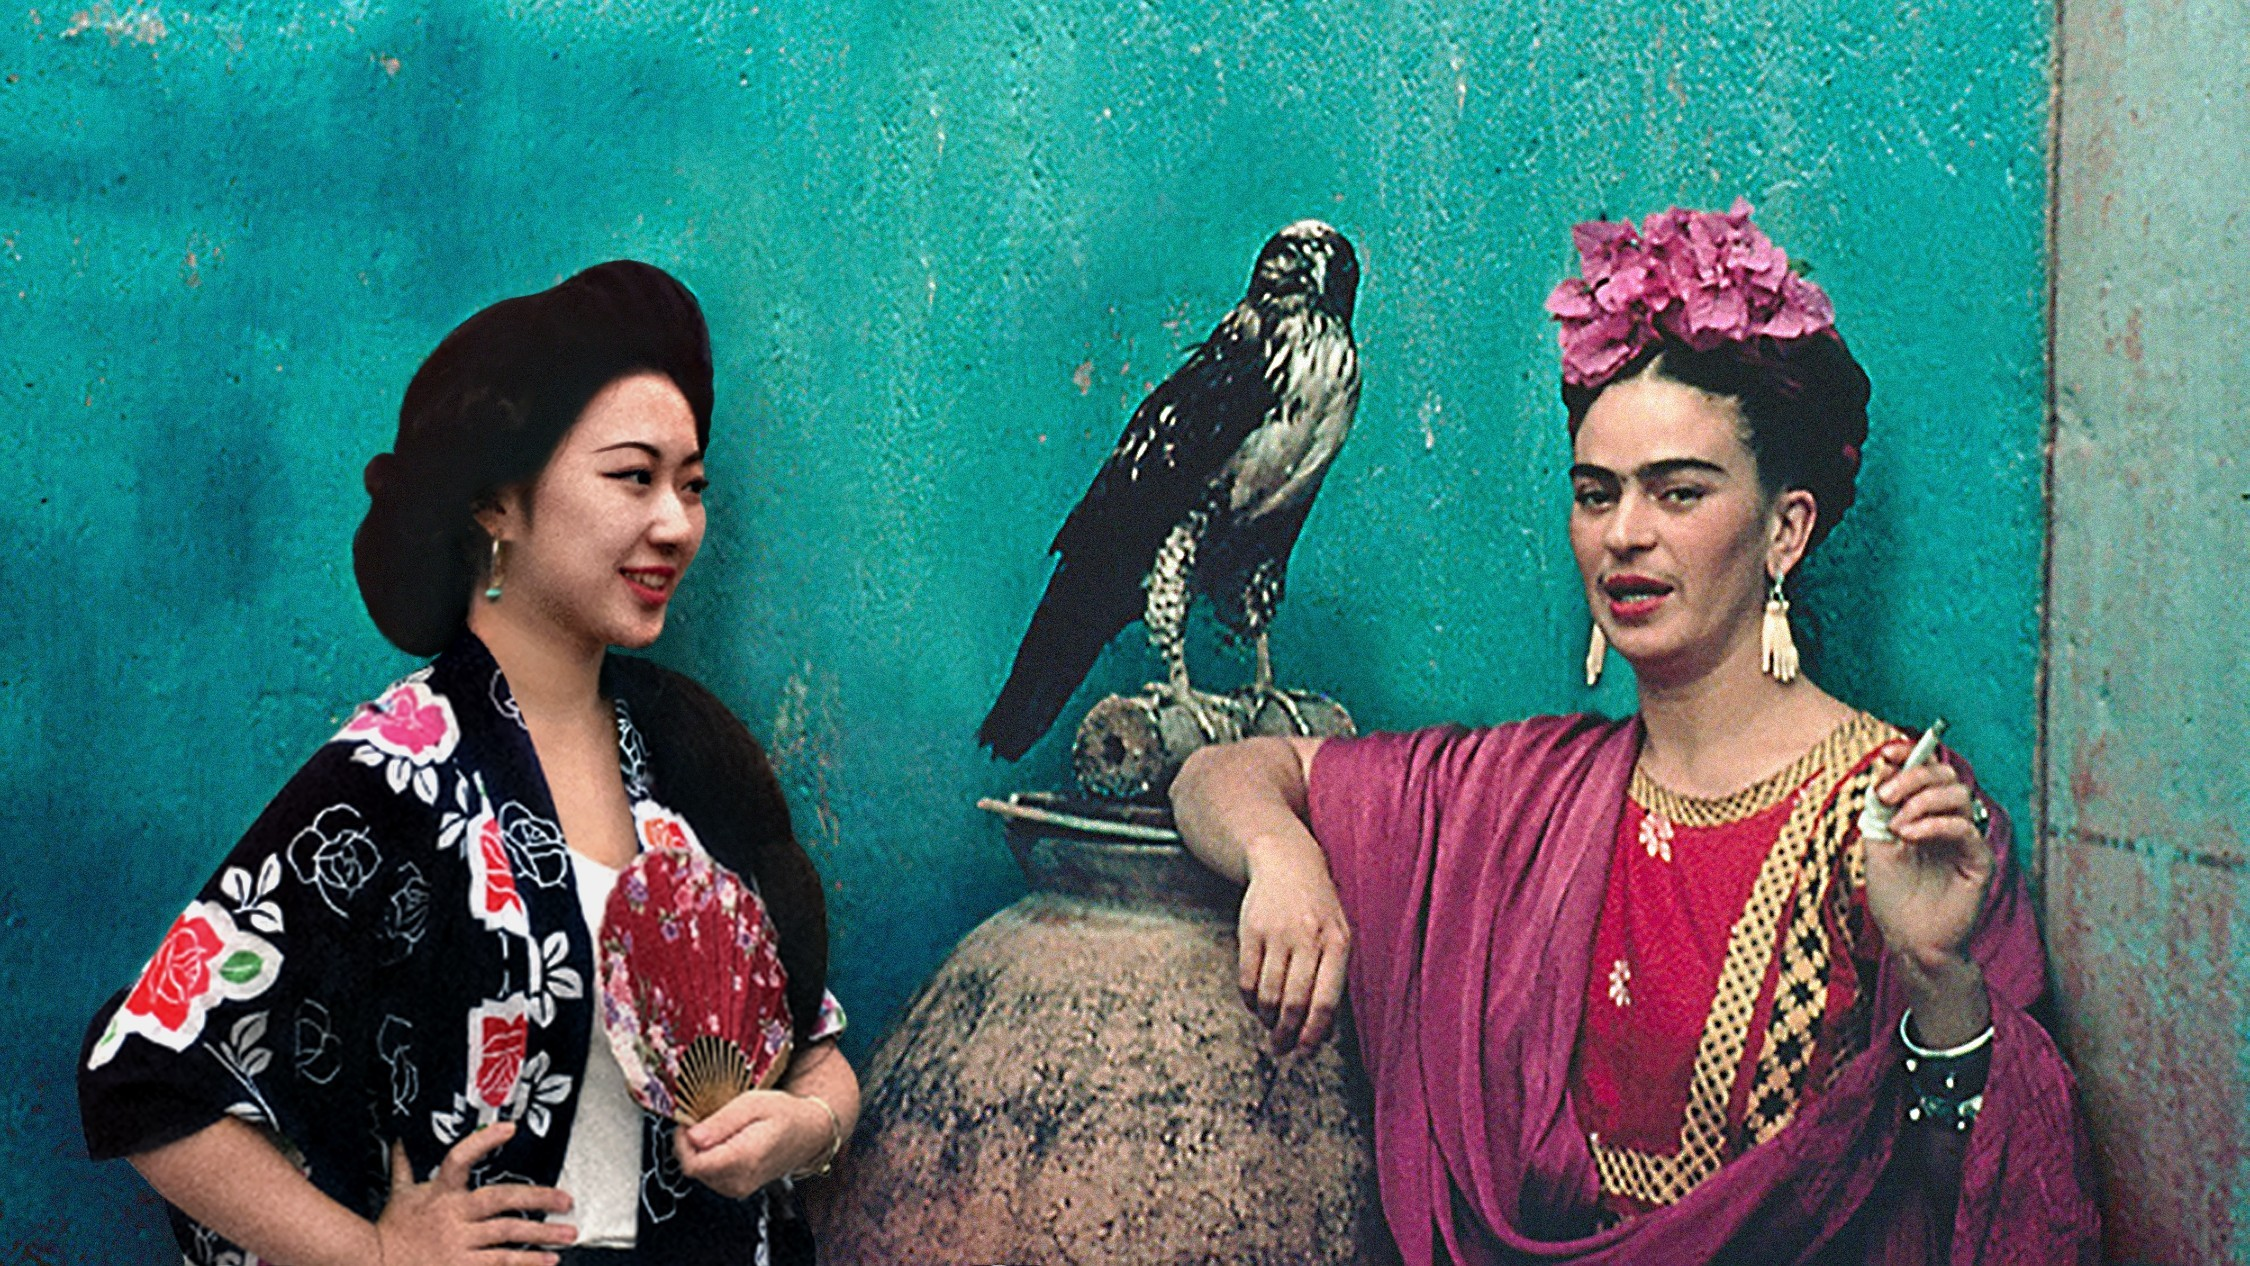 A photograph of two women, one of which is Frida Kahlo, standing against a bright teal wall. A hawk rests on a man-sized vase behind them